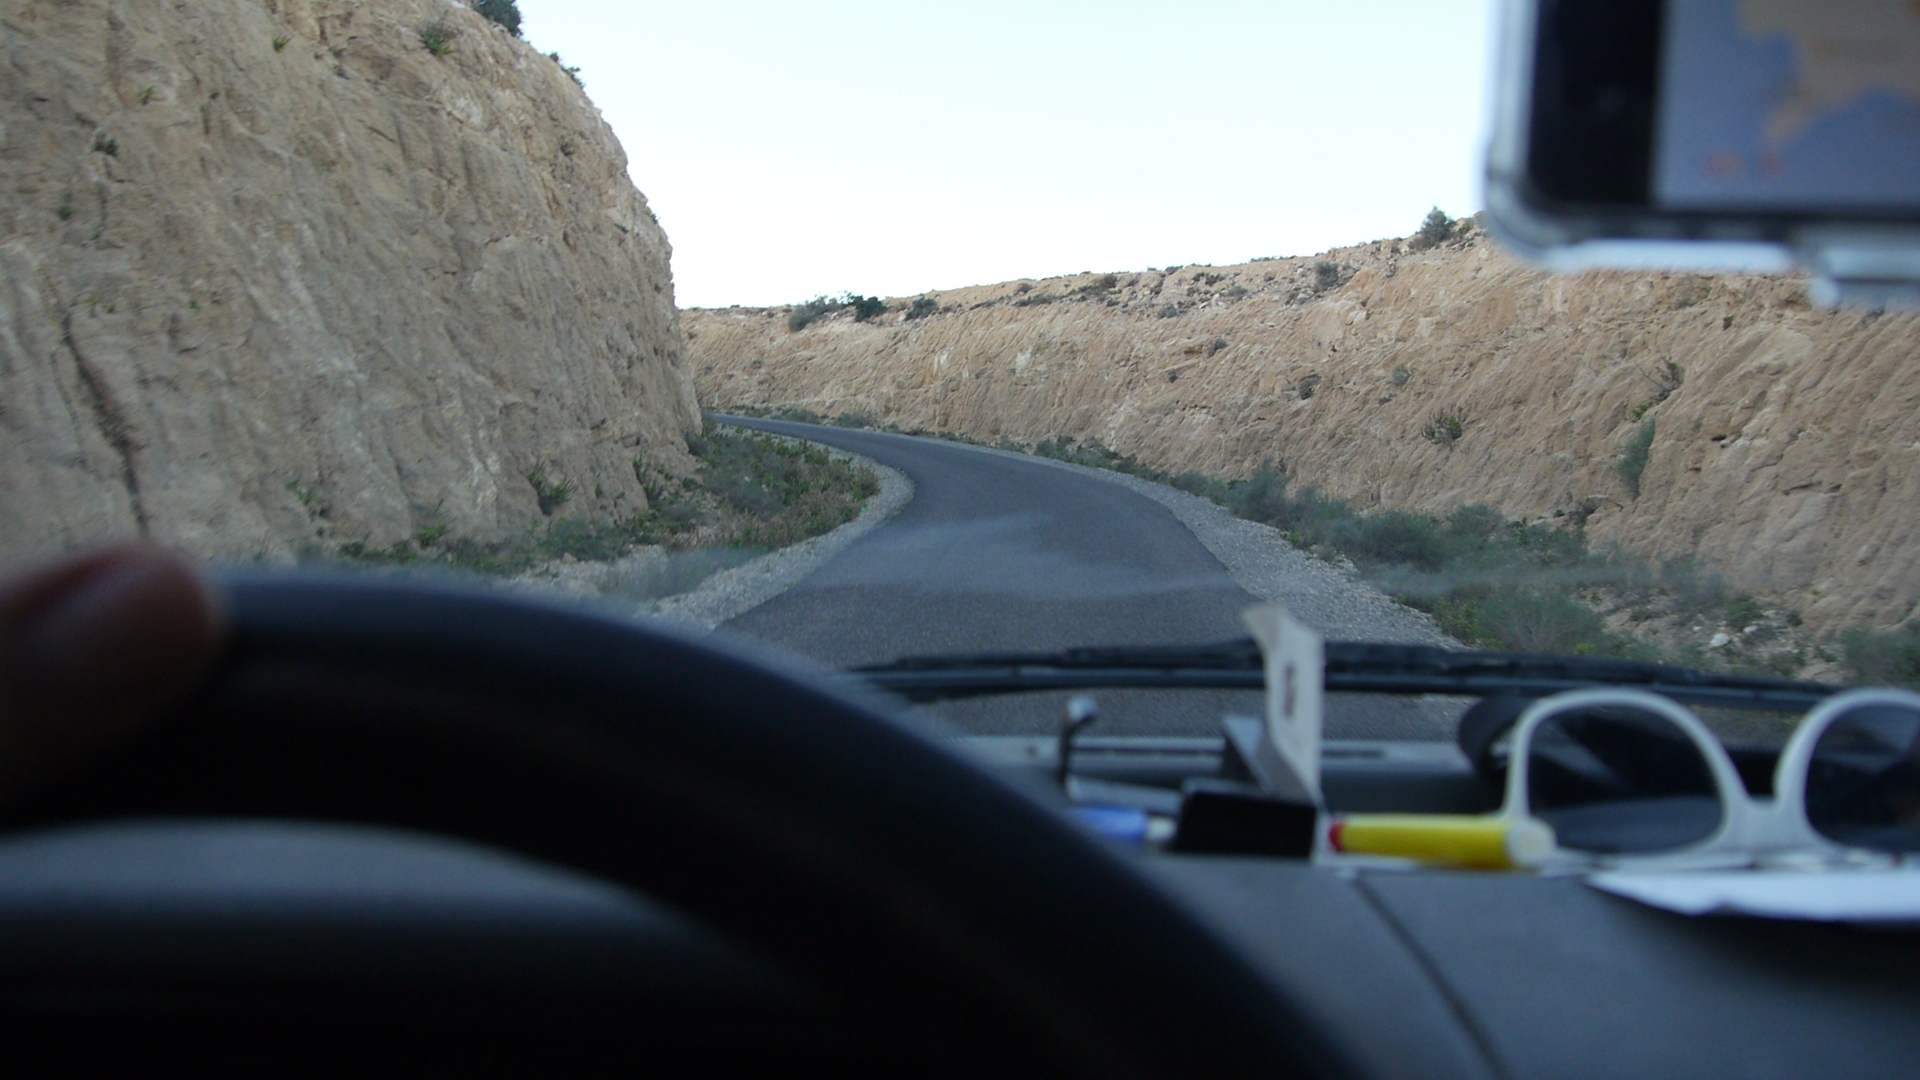 Driving vanlife in Morocco